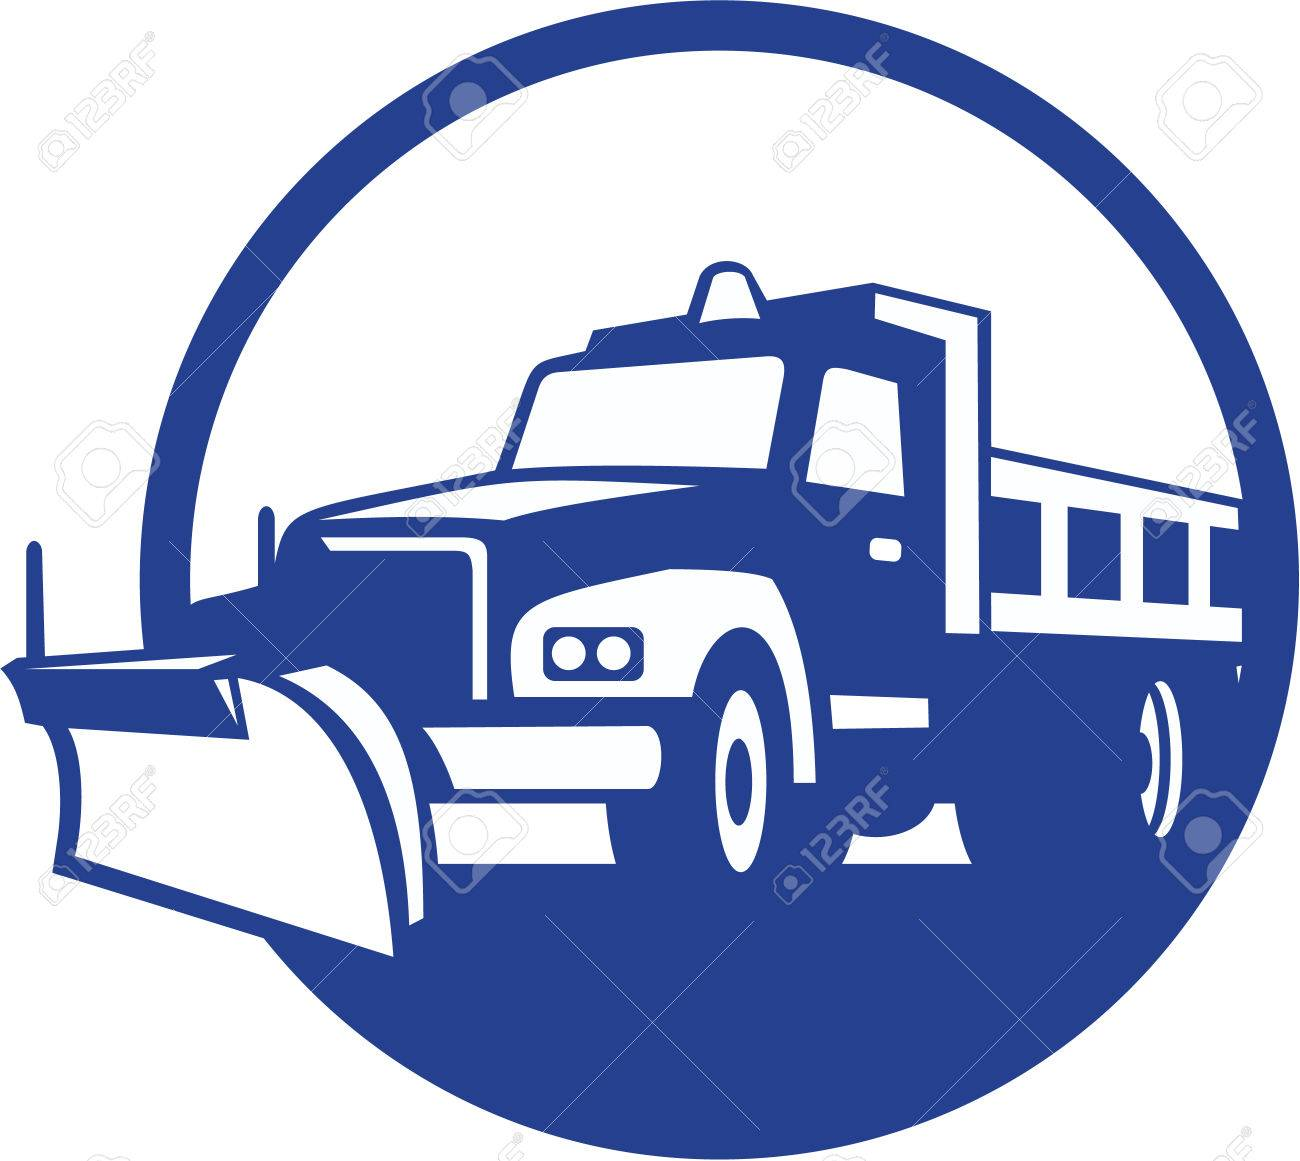 Illustration of a snow plow truck set inside circle on isolated background done in retro style. Stock Vector - 26131761